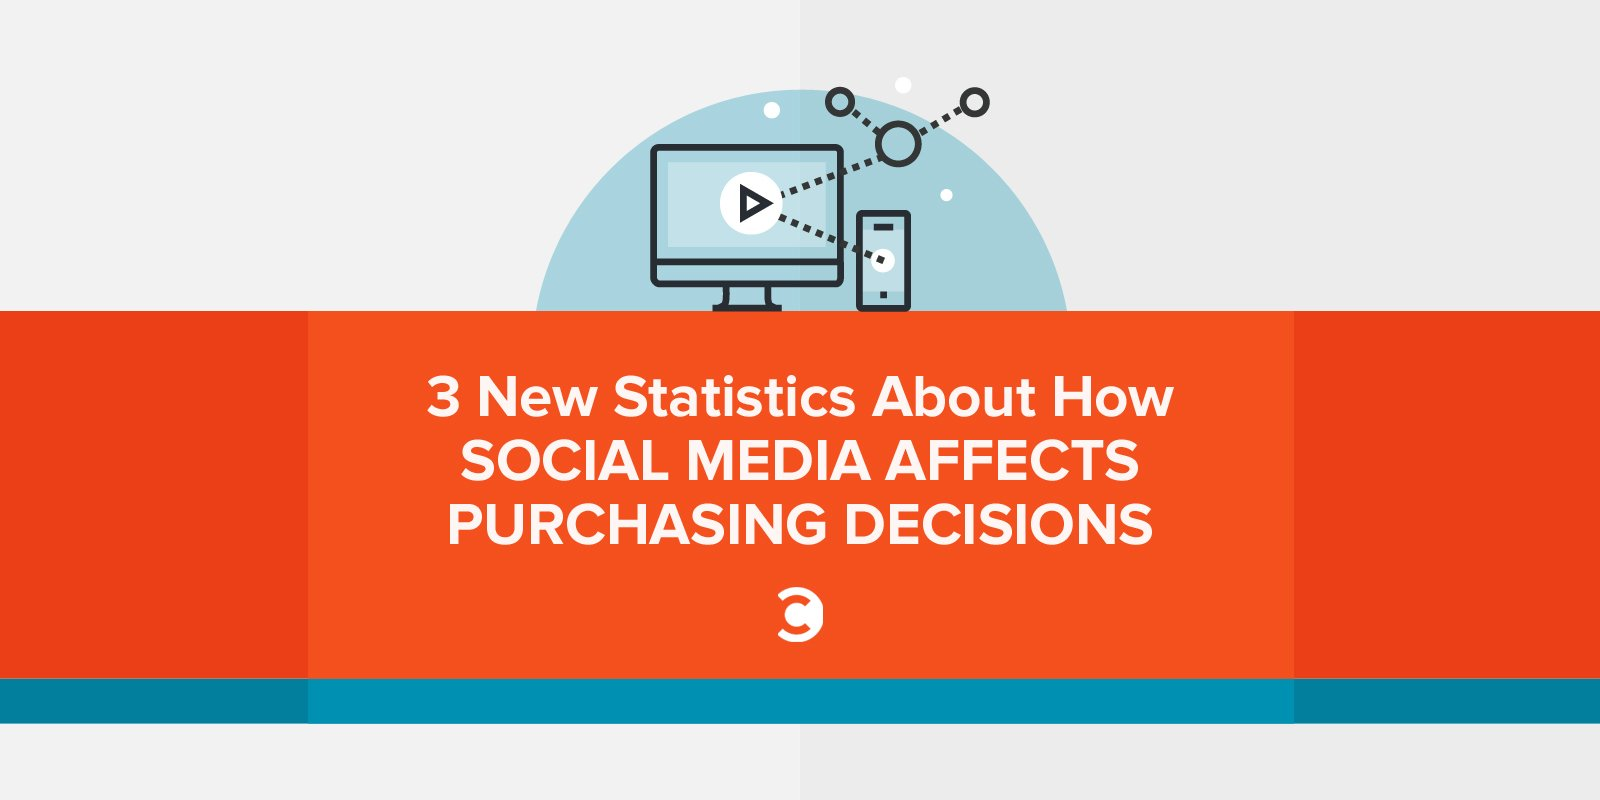 3 New Statistics About How Social Media Affects Purchasing Decisions